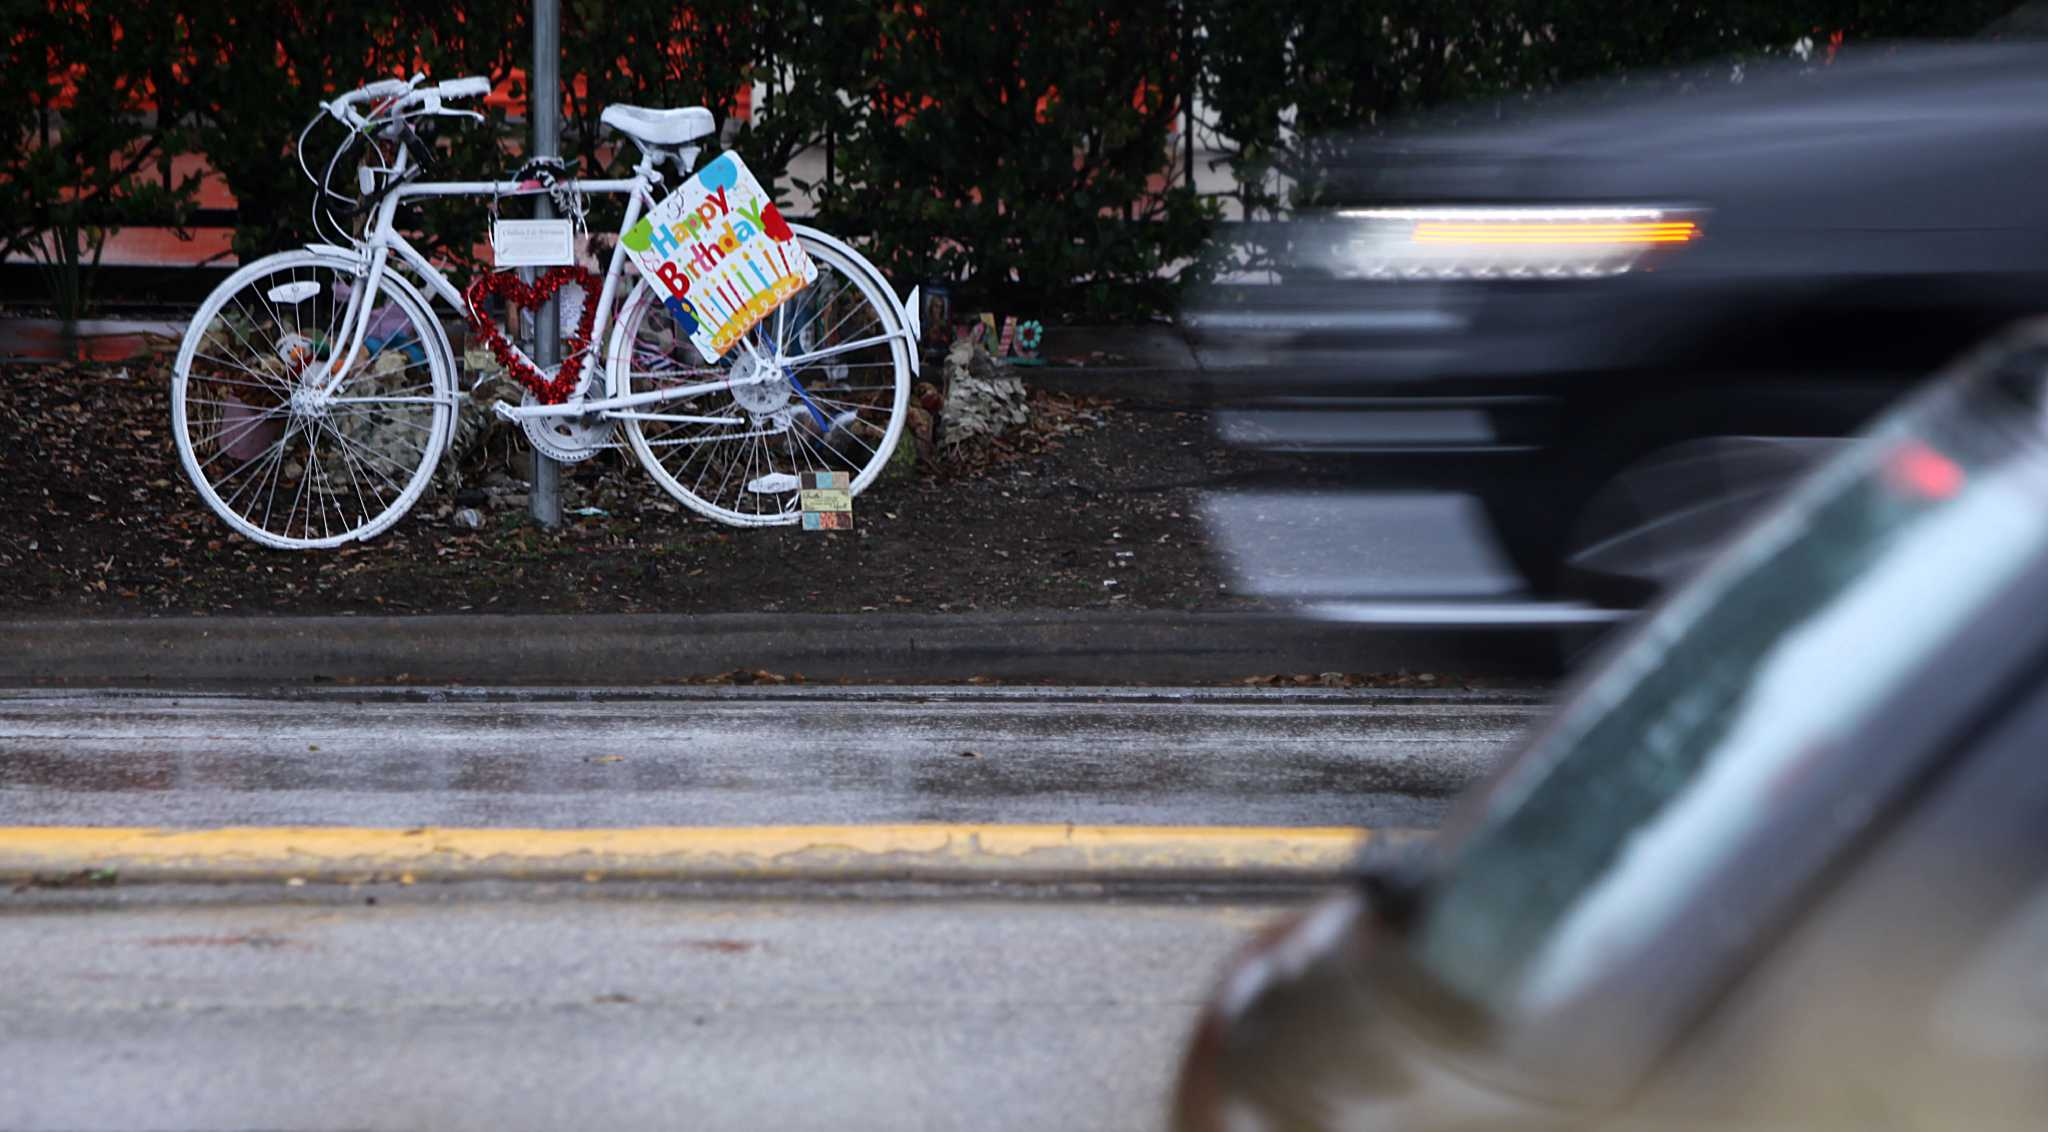 local gray matters article want safer streets think comprehensively